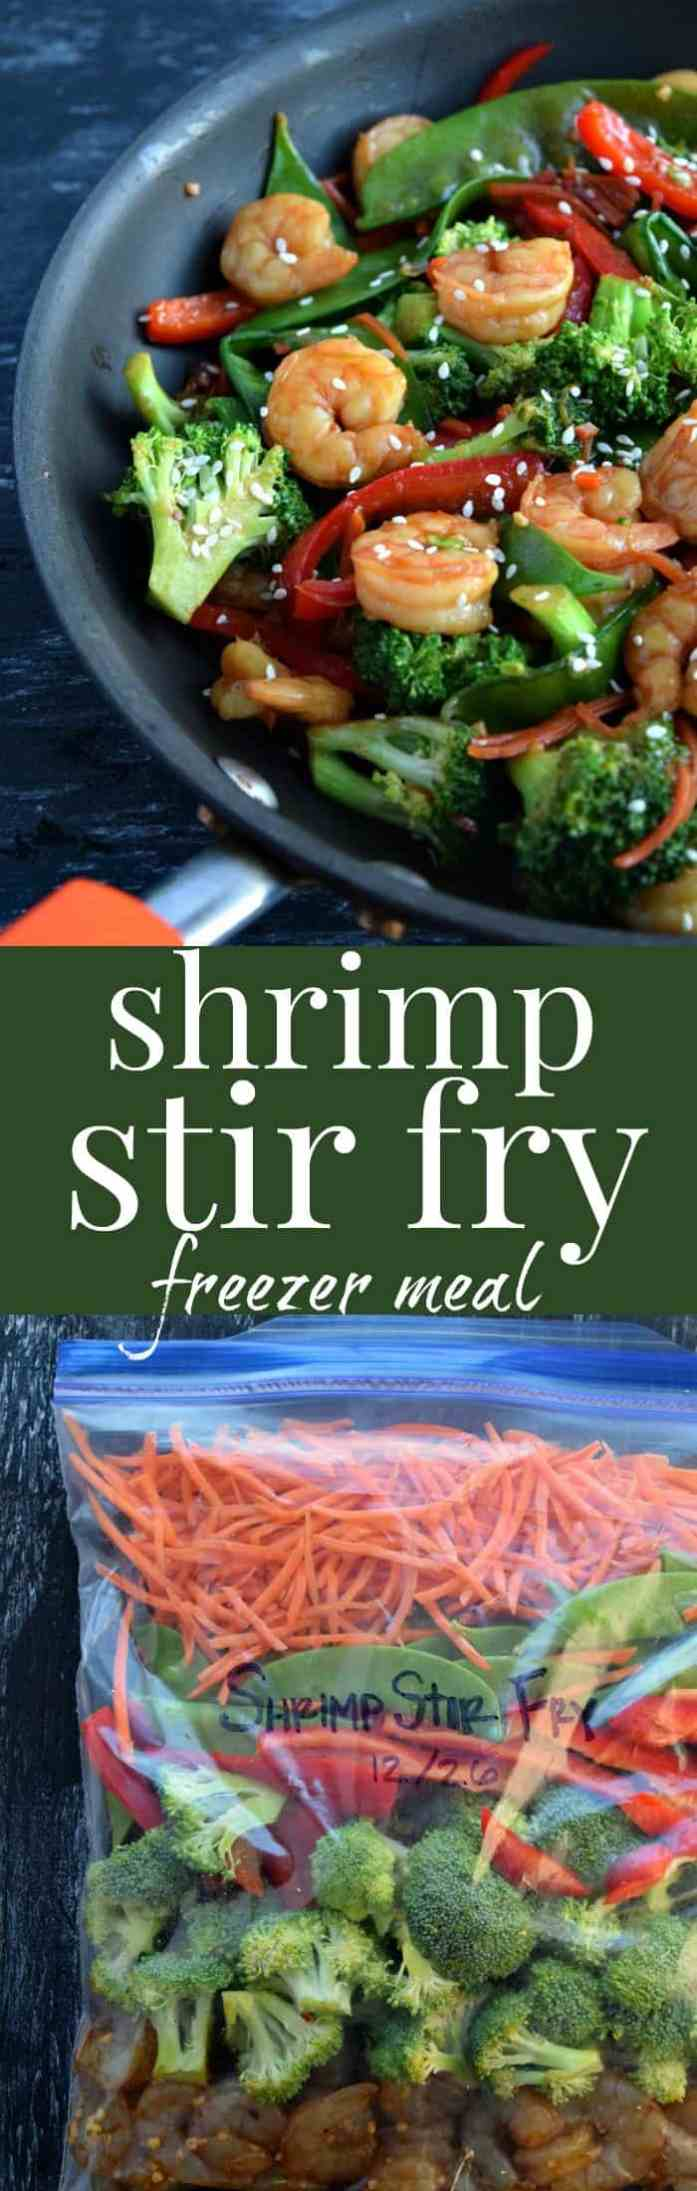 Shrimp Stir Fry Freezer Meal Pinterest Pin #freezermeal #stirfry #dinnerideas